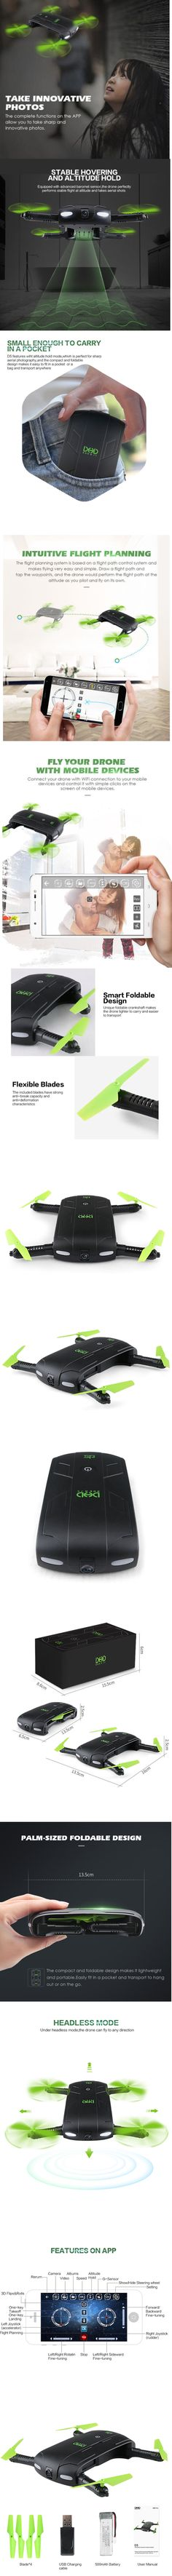 Your Personal Photo Taker Cool Gadget Drone #coolgadgets